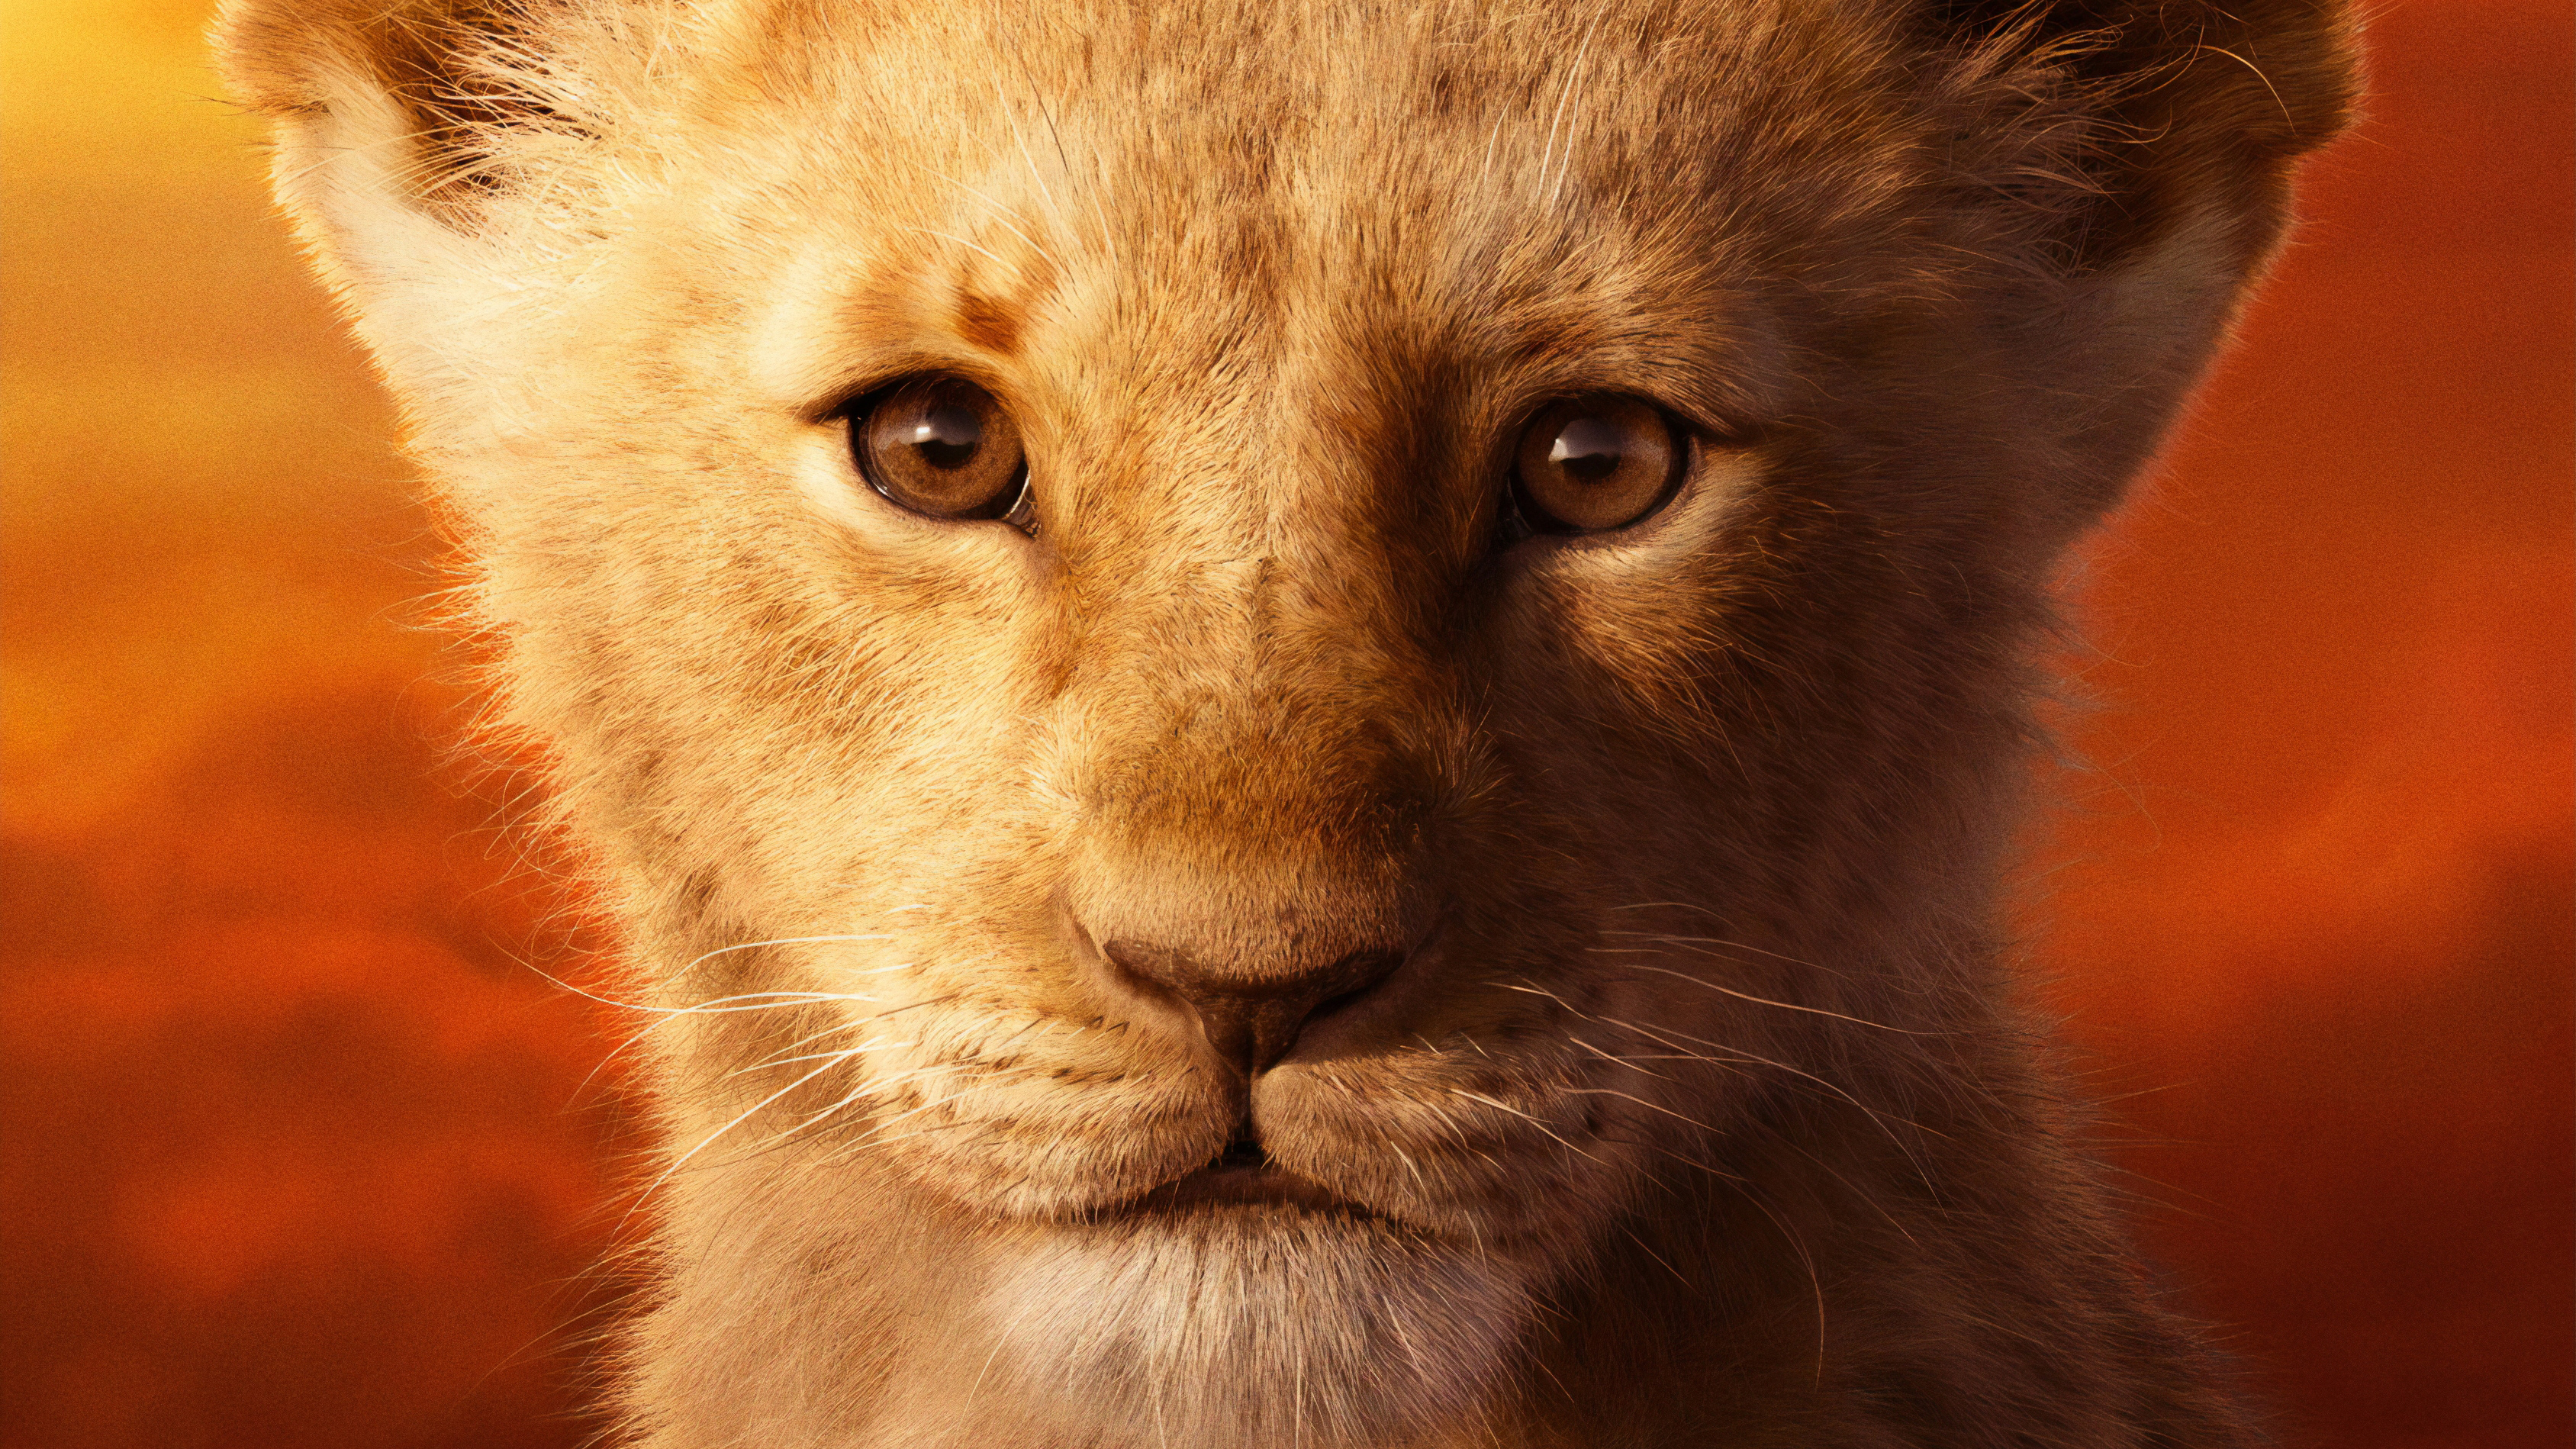 Jd Mccrary As Simba The Lion King 2019 4k Hd Movies 4k